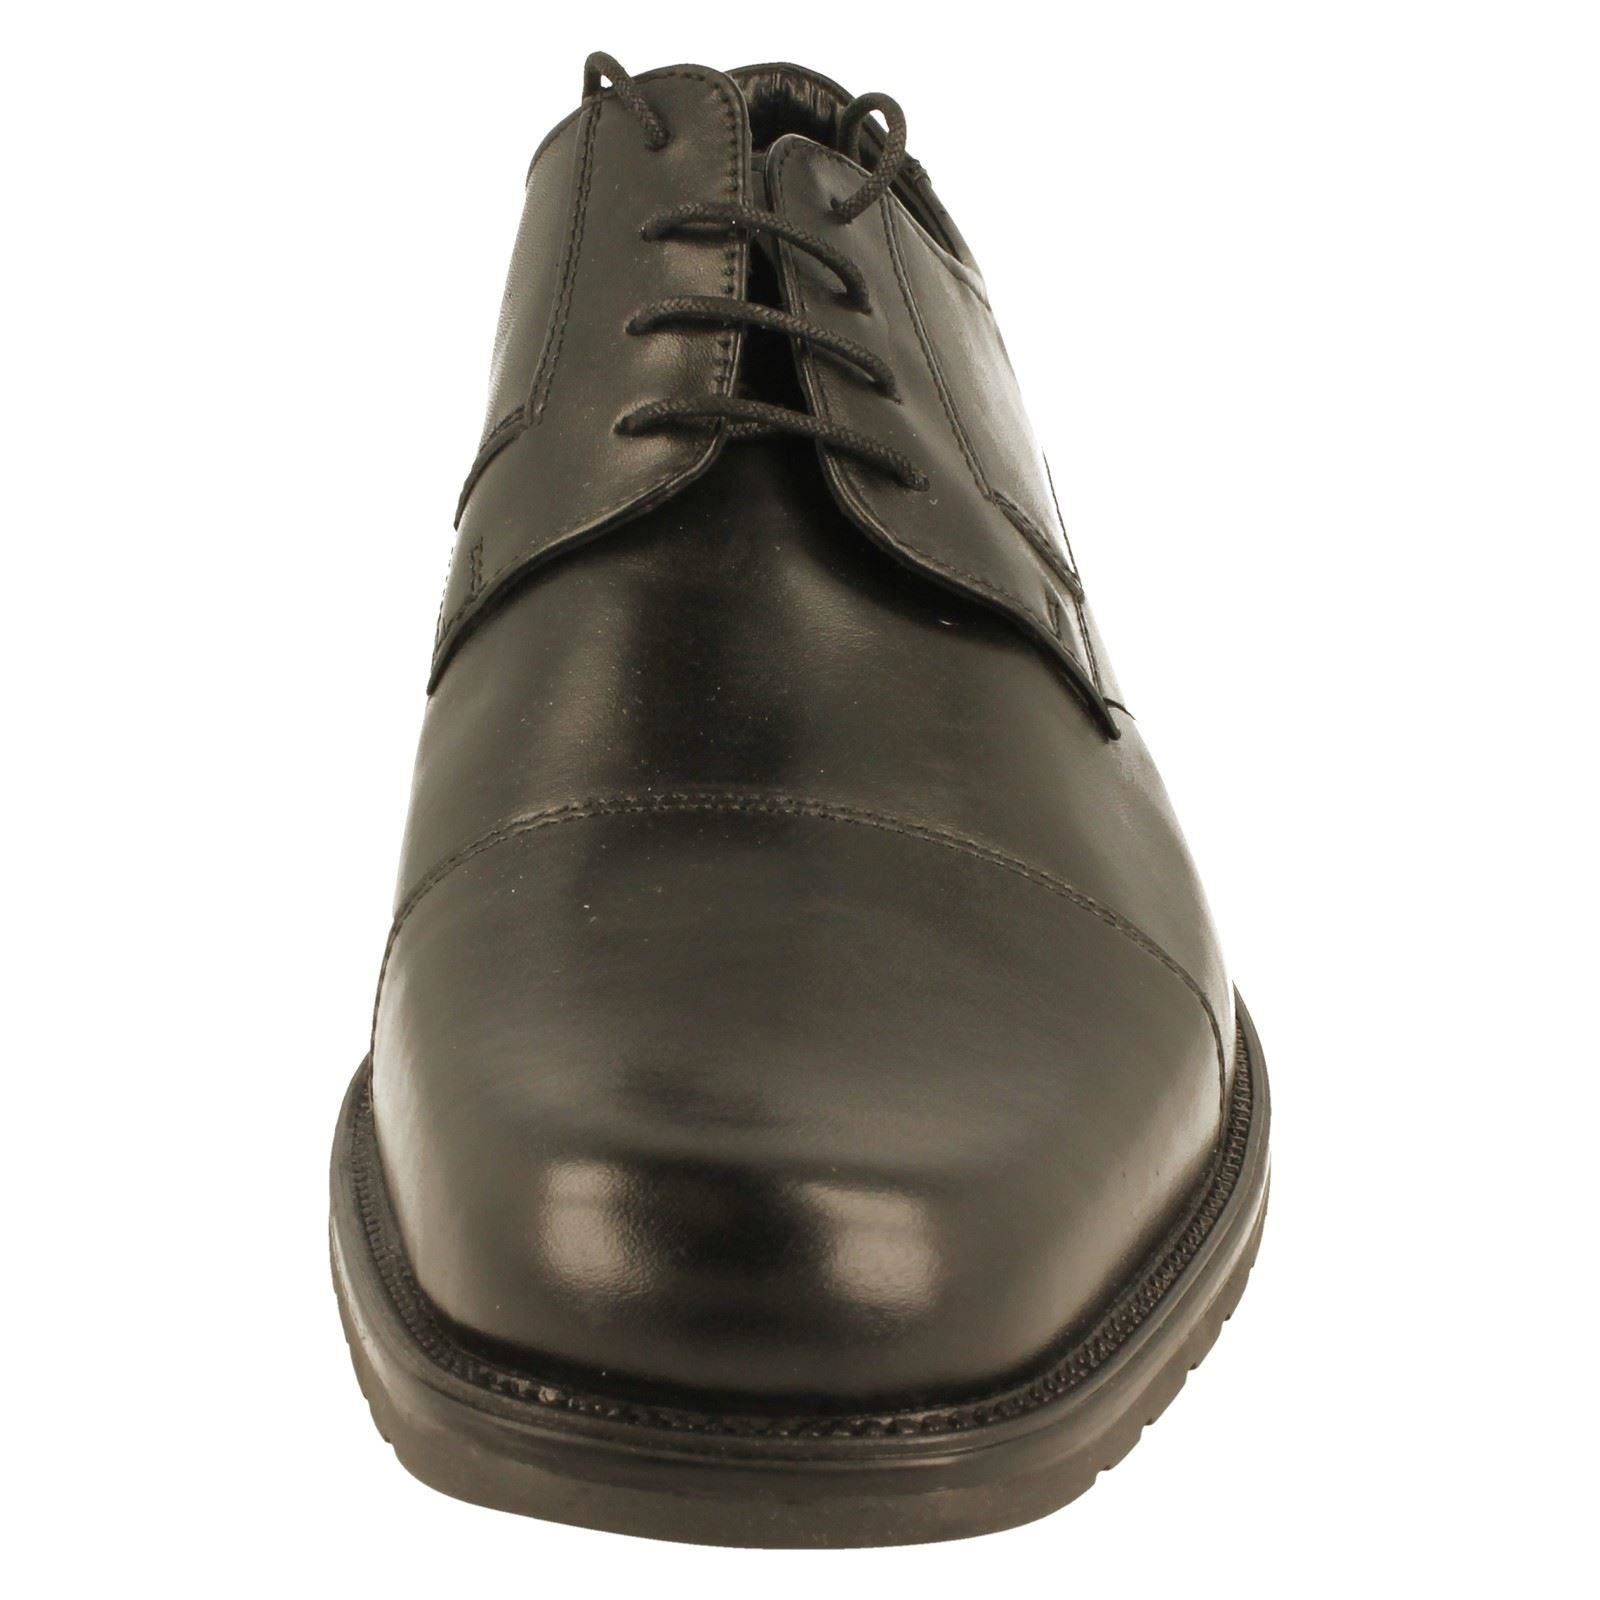 Uomo Clarks Breech Formal Lace-Up Schuhes, The Style Breech Clarks Act -w 6004e5